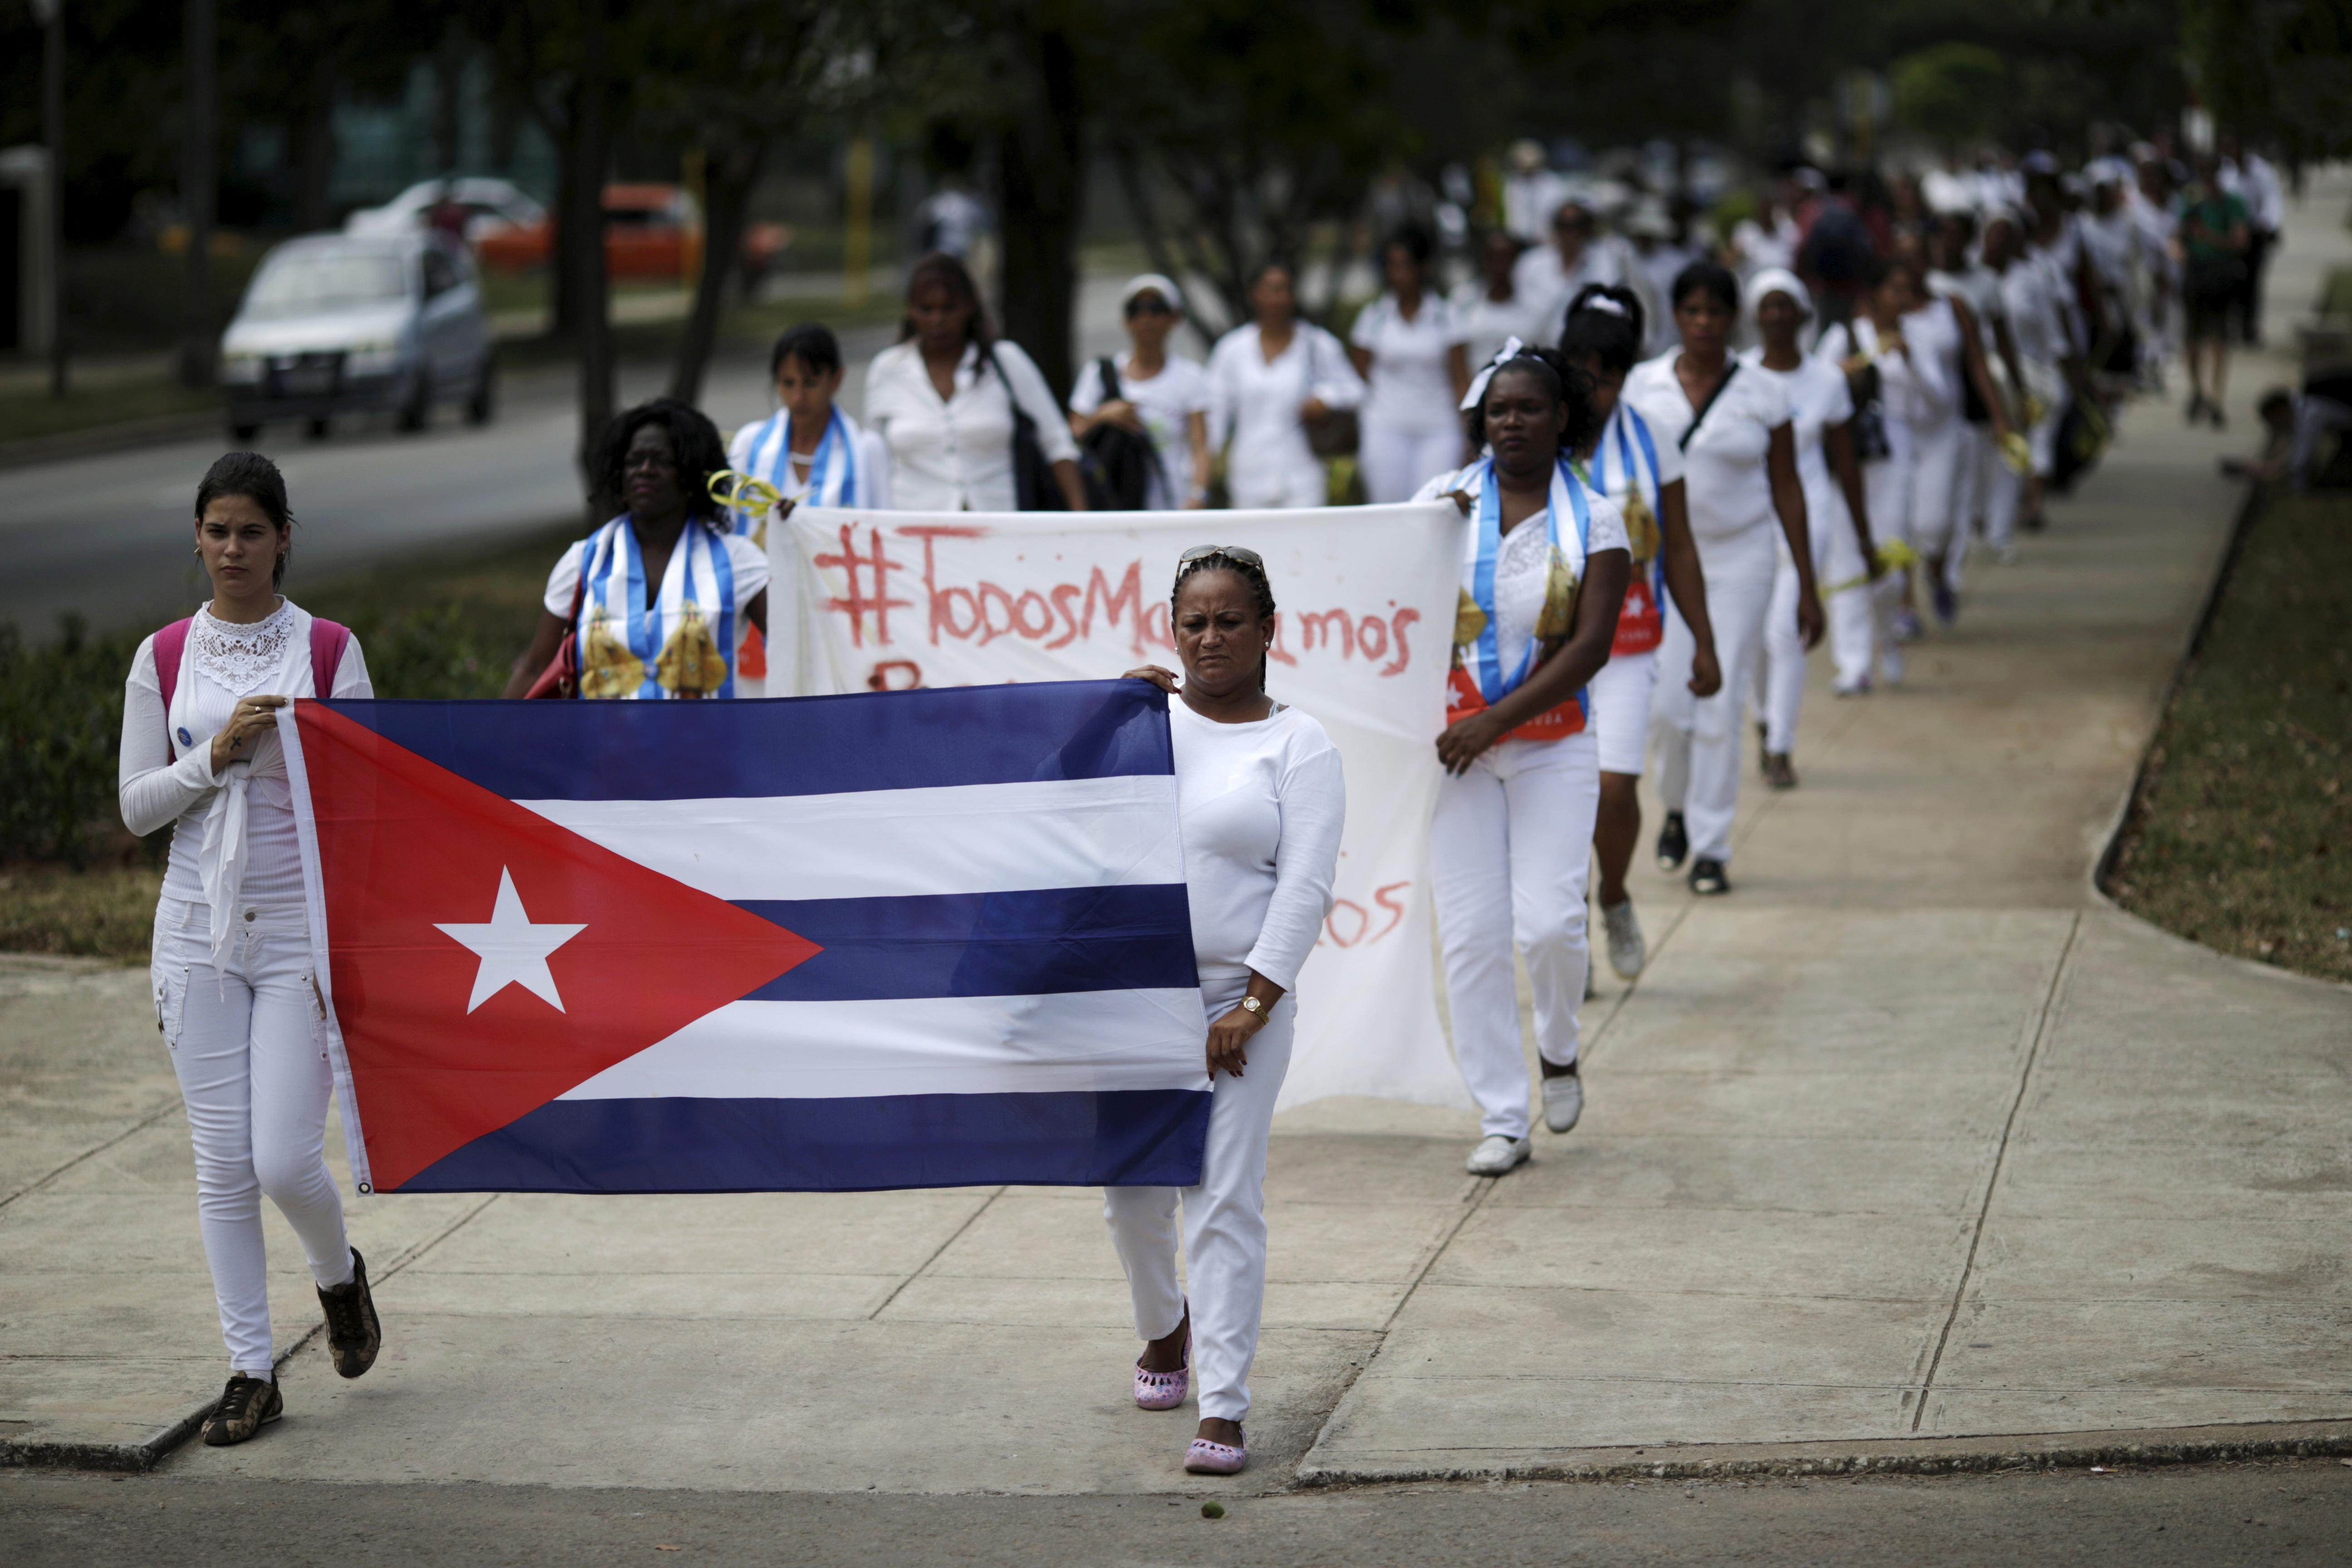 Cuba forces dissidents into exile, advocacy group says